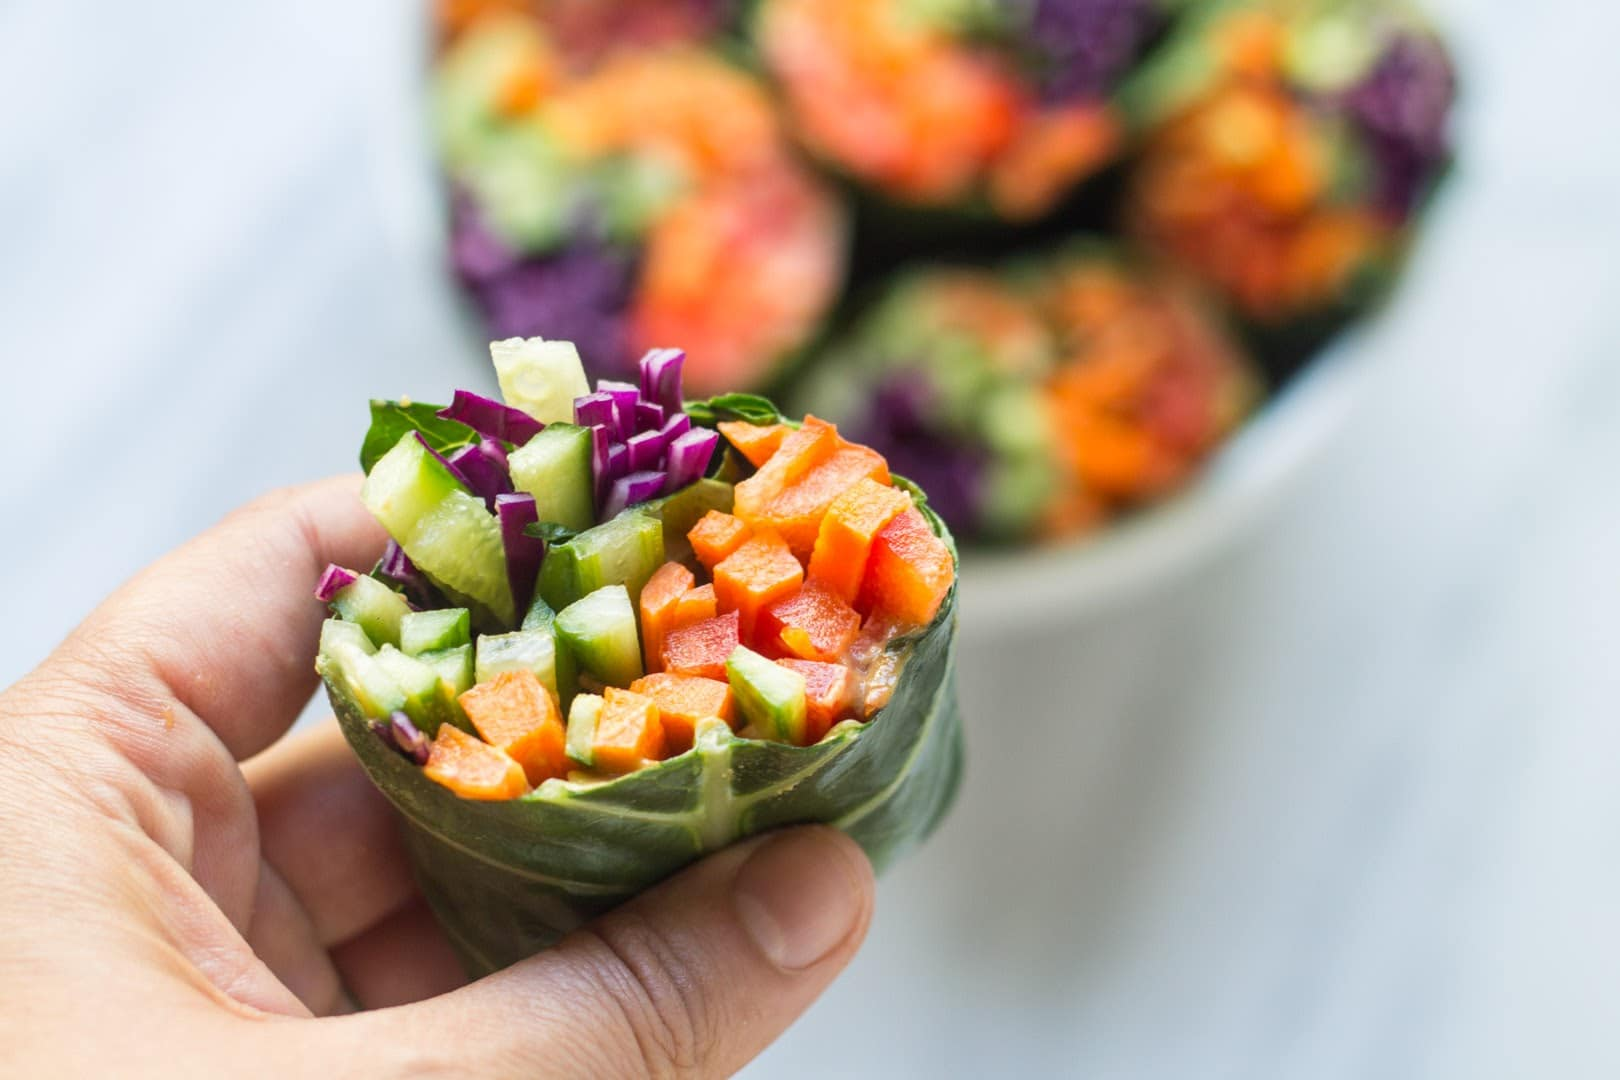 Hand holding low FODMAP rainbow wrap